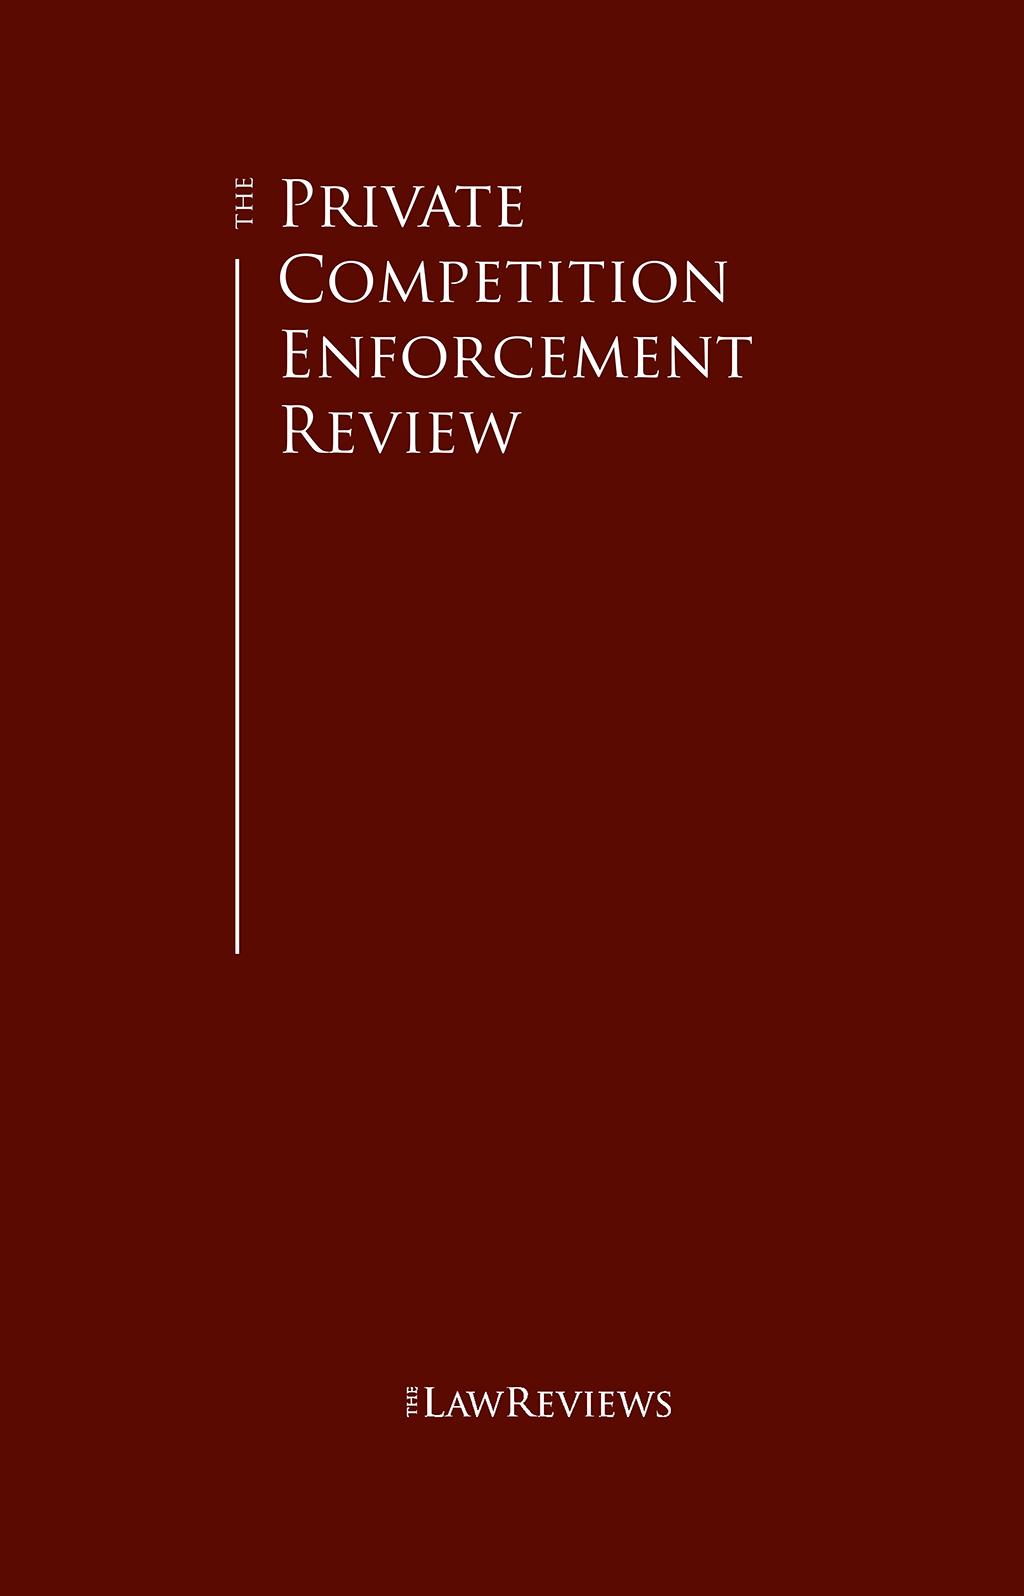 The Private Competition Enforcement Review